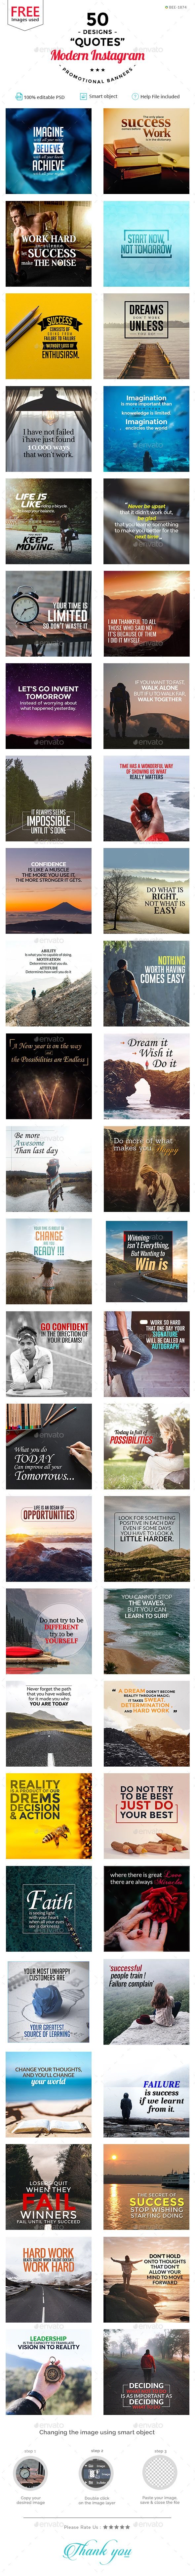 50 Awesome Quality Instagram Banner Template PSD #ads #promotion